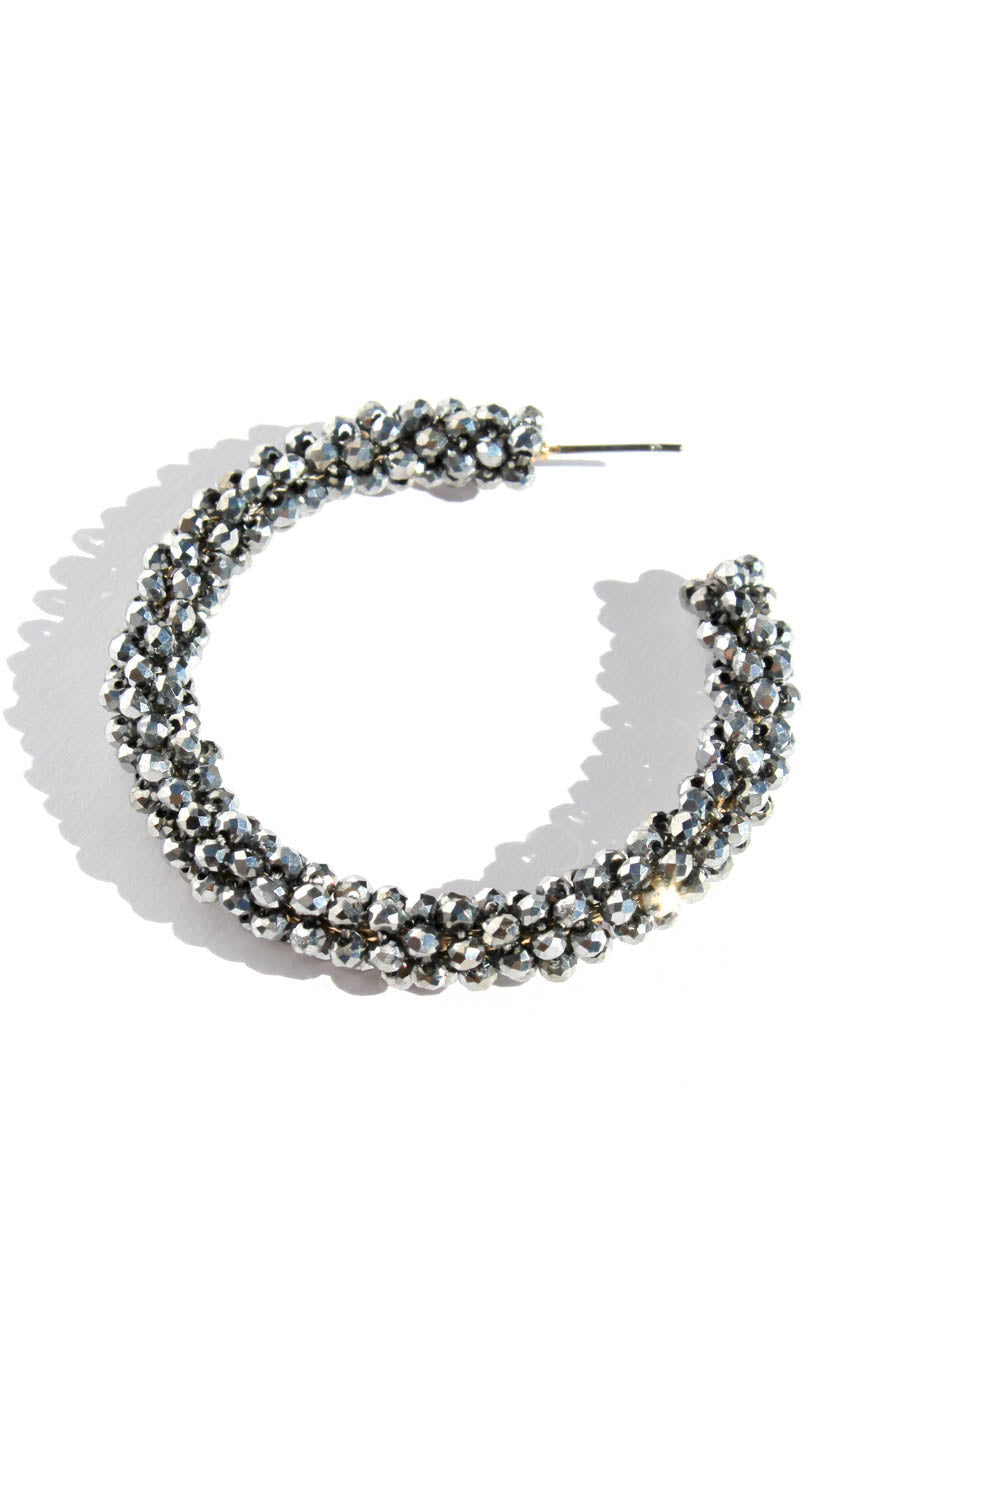 ZAZA SILVER HOOP EARRINGS